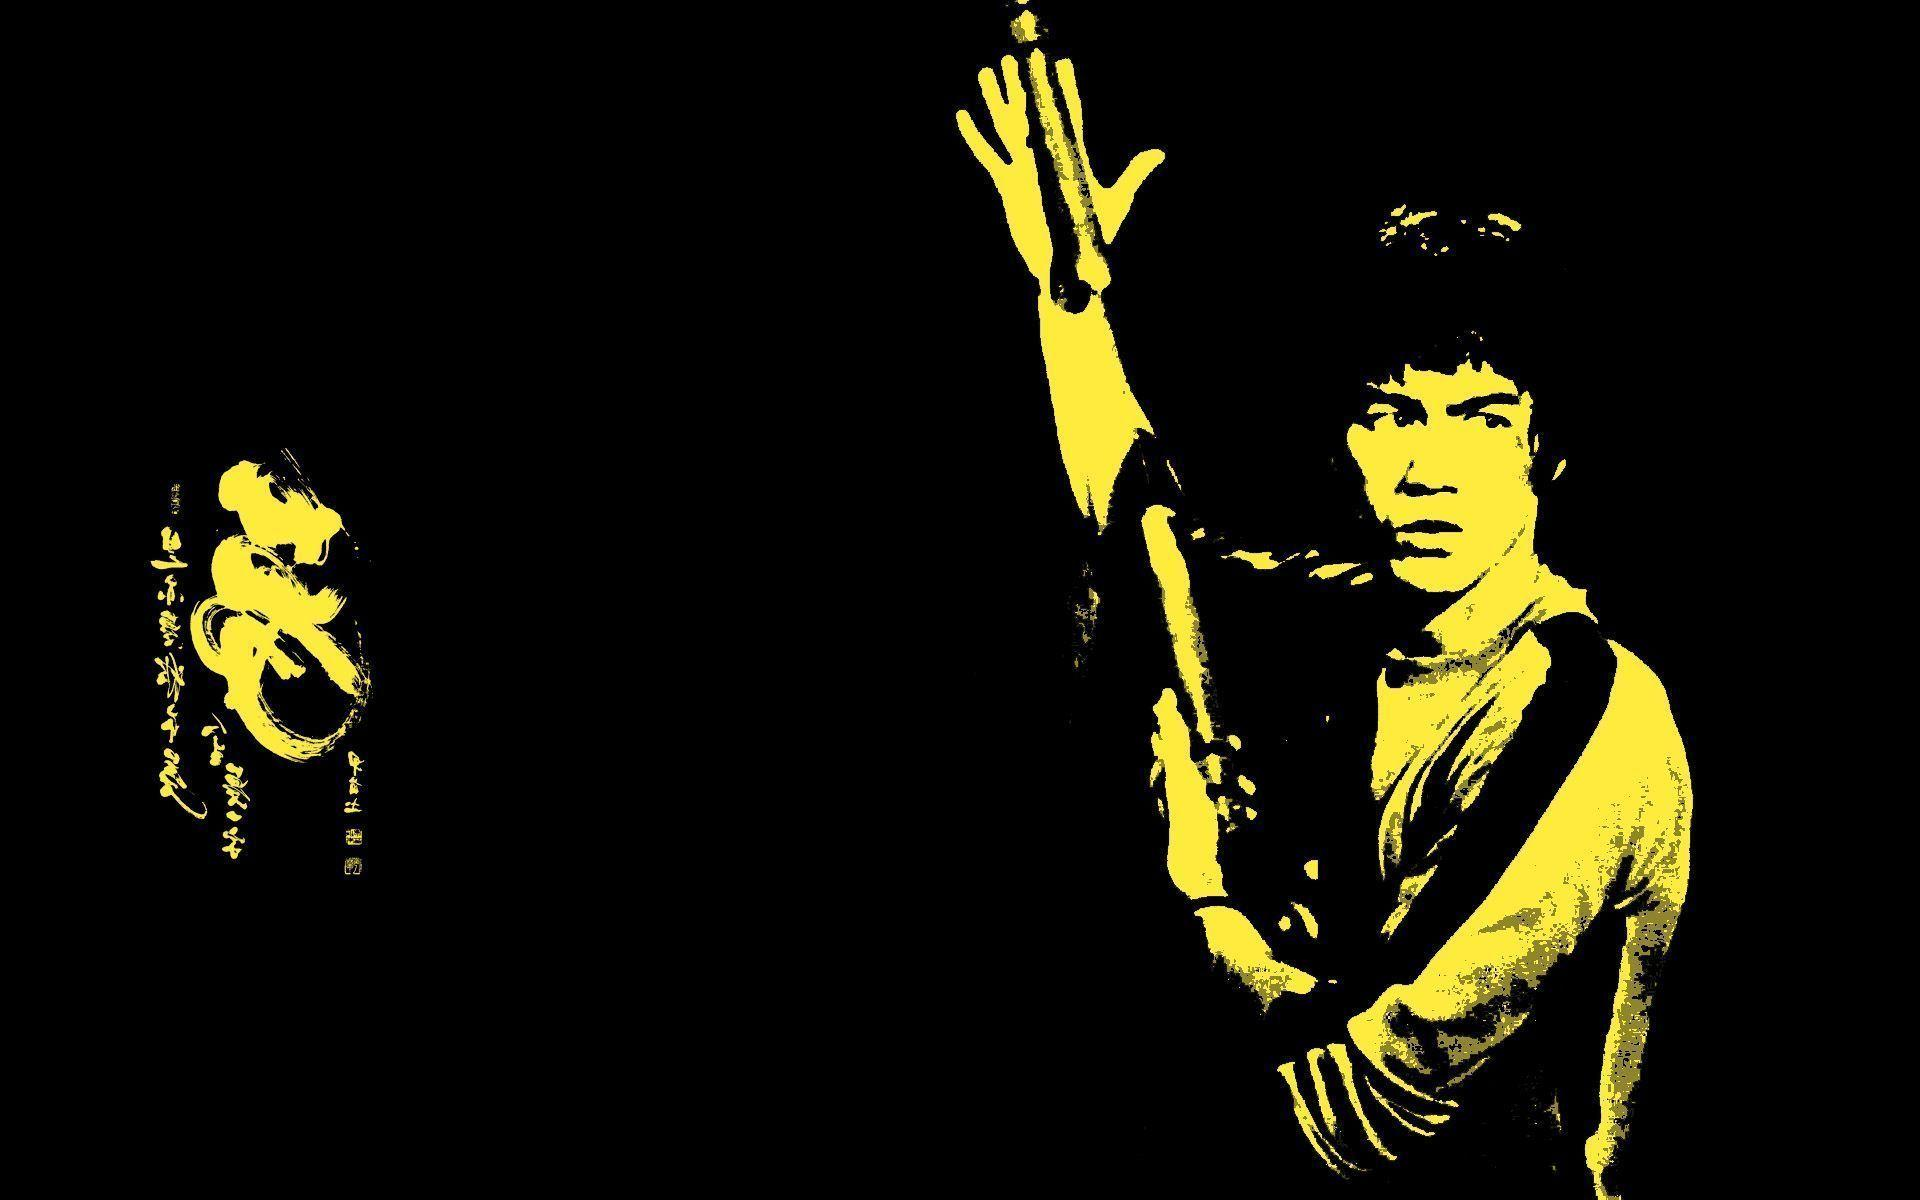 2560x1600 bruce lee desktop - photo #21